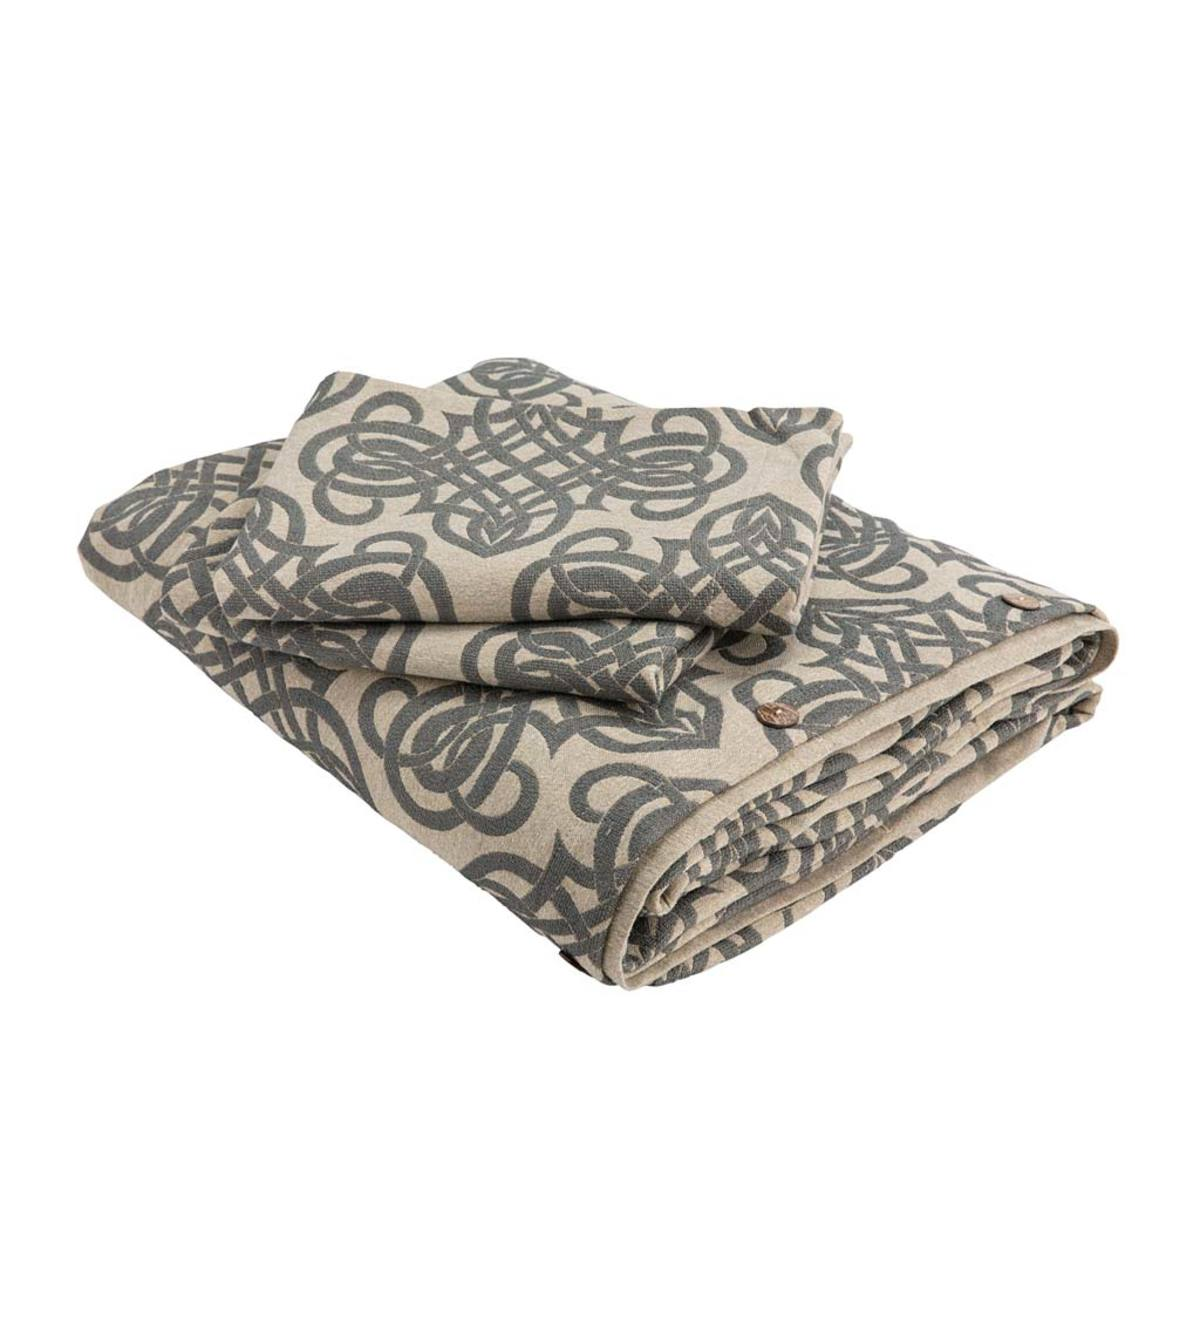 Trina King Recycled Cotton Duvet Set - Frost